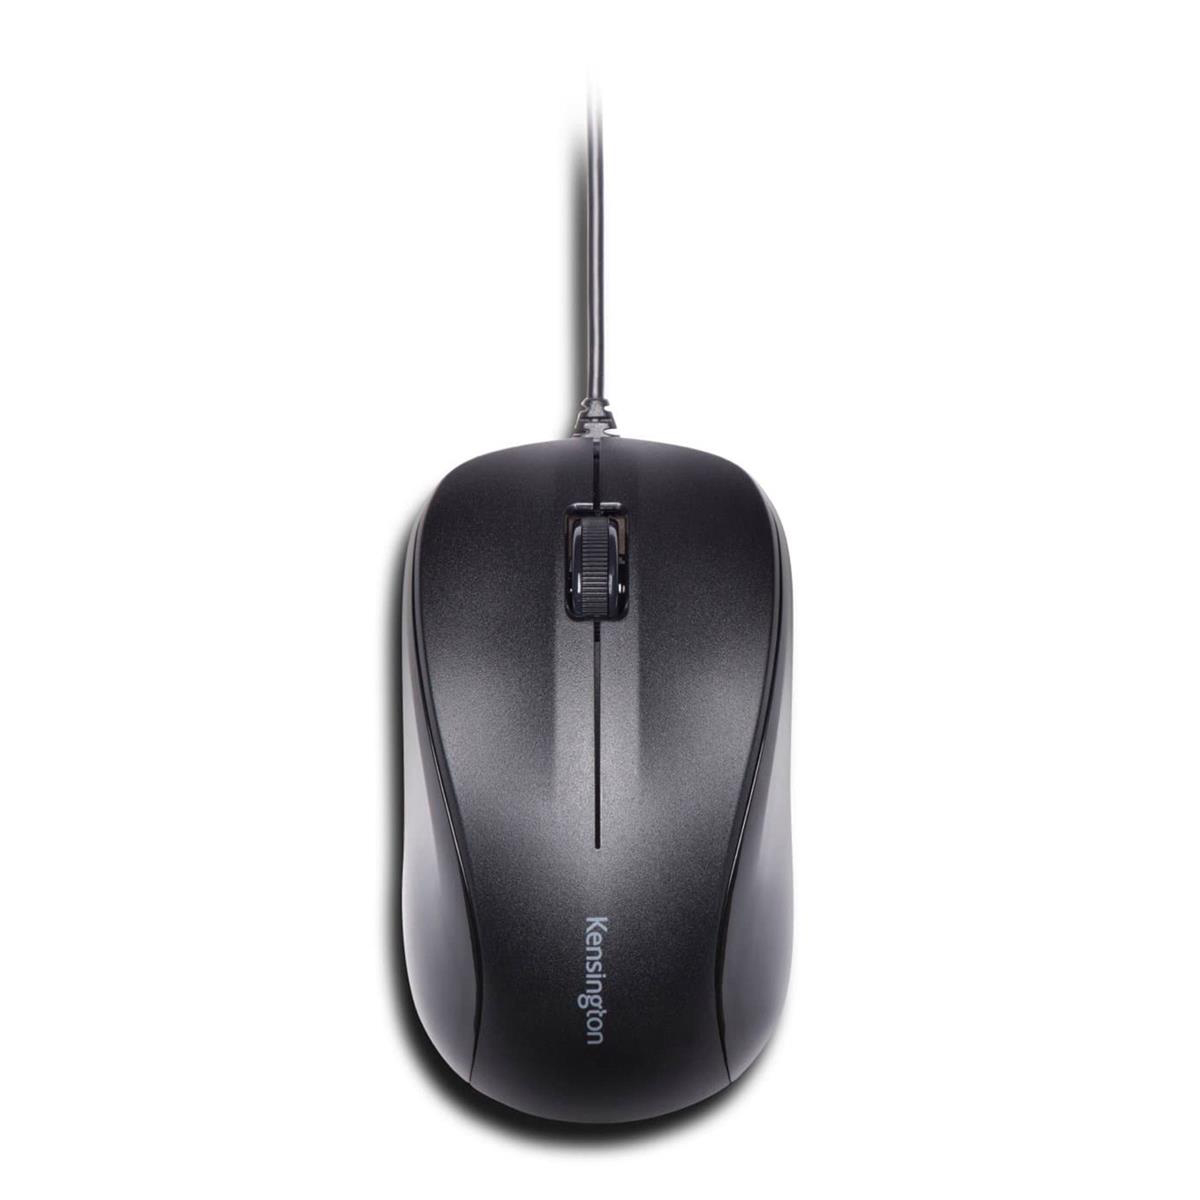 Wireless Kensington ValuMouse Wired Optical Three-Button Mouse USB Optical 1000dpi Both Handed Black Ref K72110EU